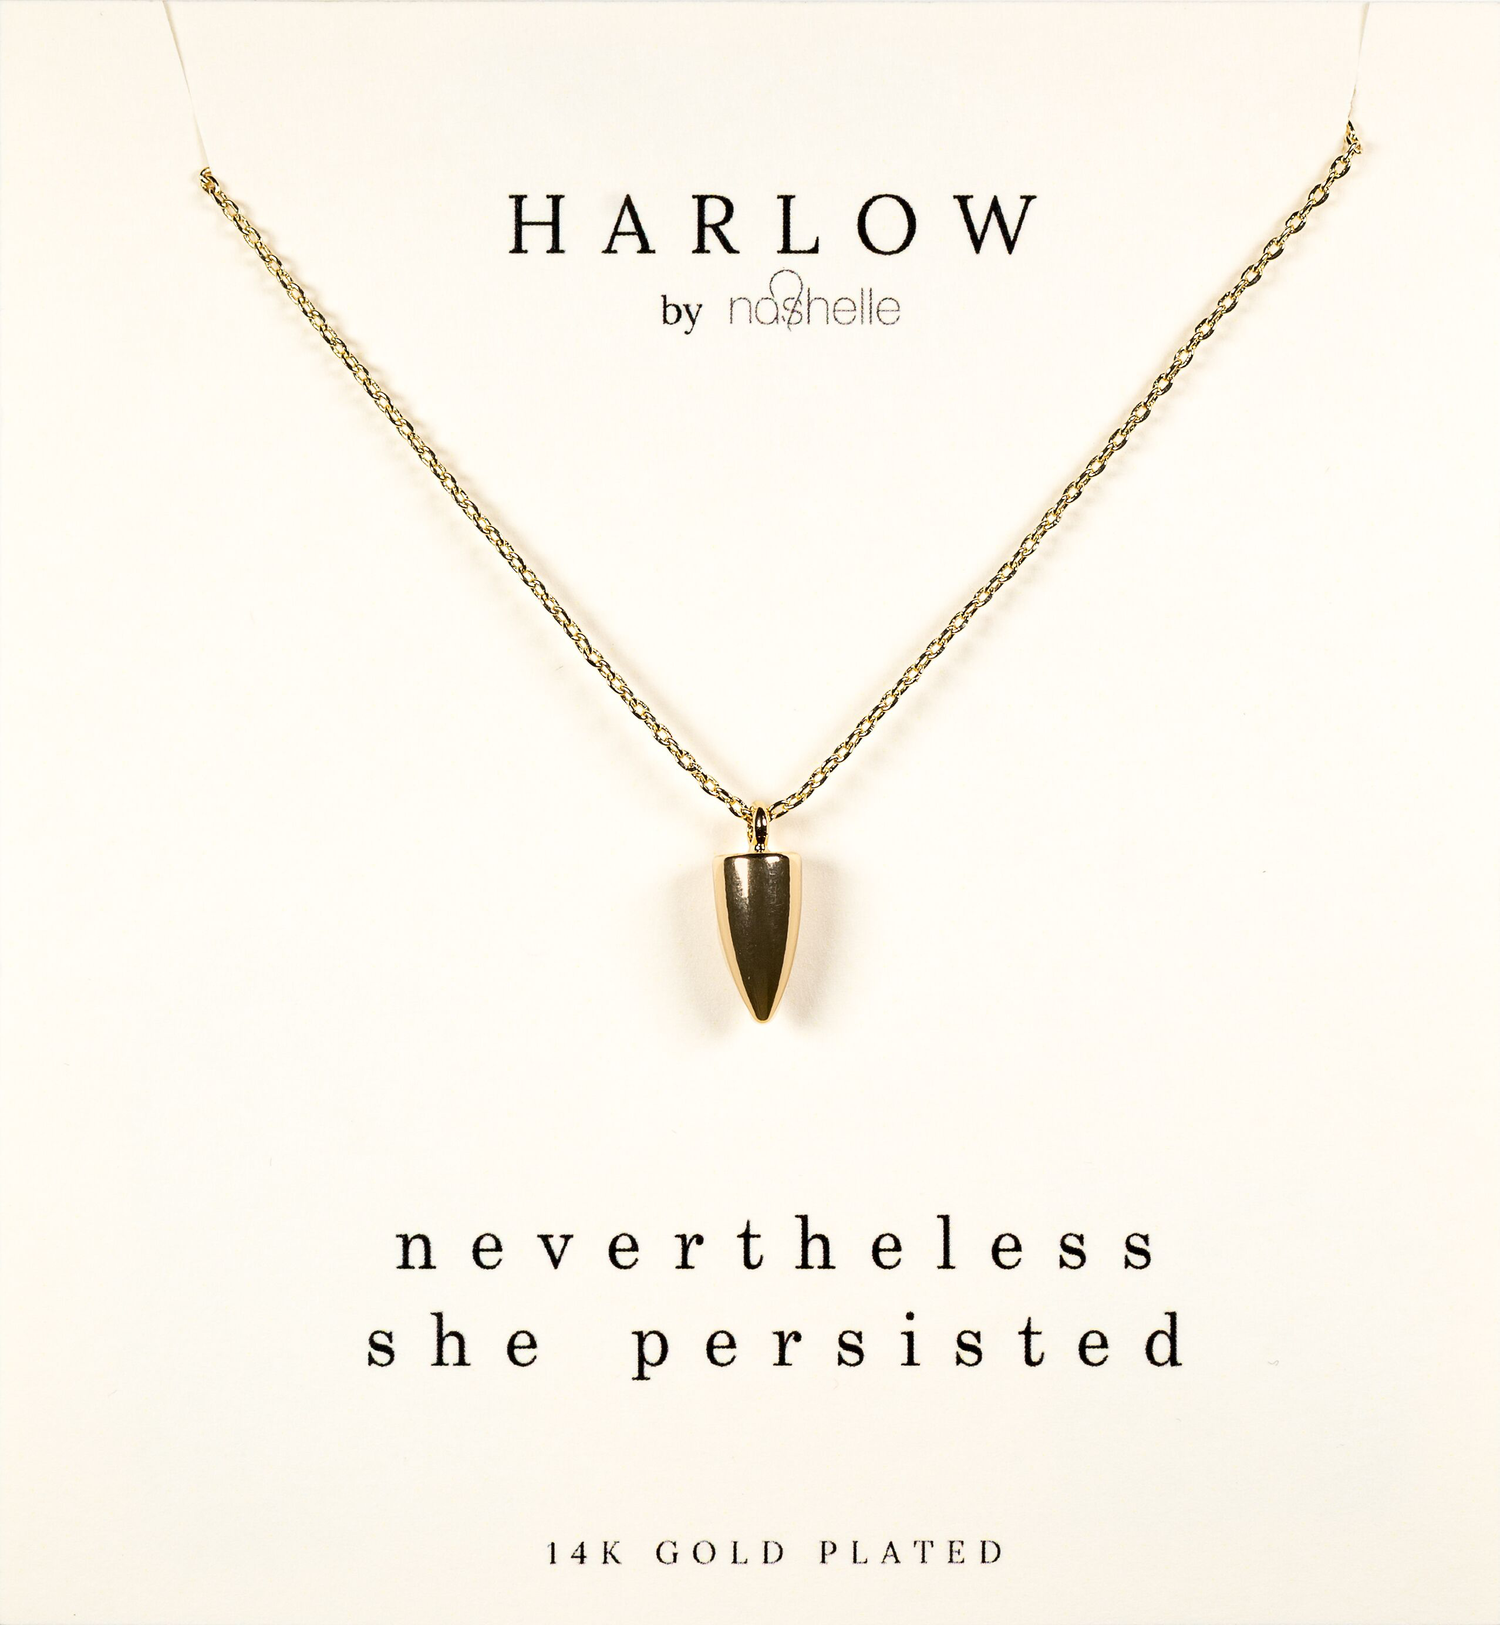 Harlow Box Set Dagger Necklace Never the Less She Persisted  The box set collection from our HARLOW by Nashelle was Designed in Bend Oregon and ethnically sourced